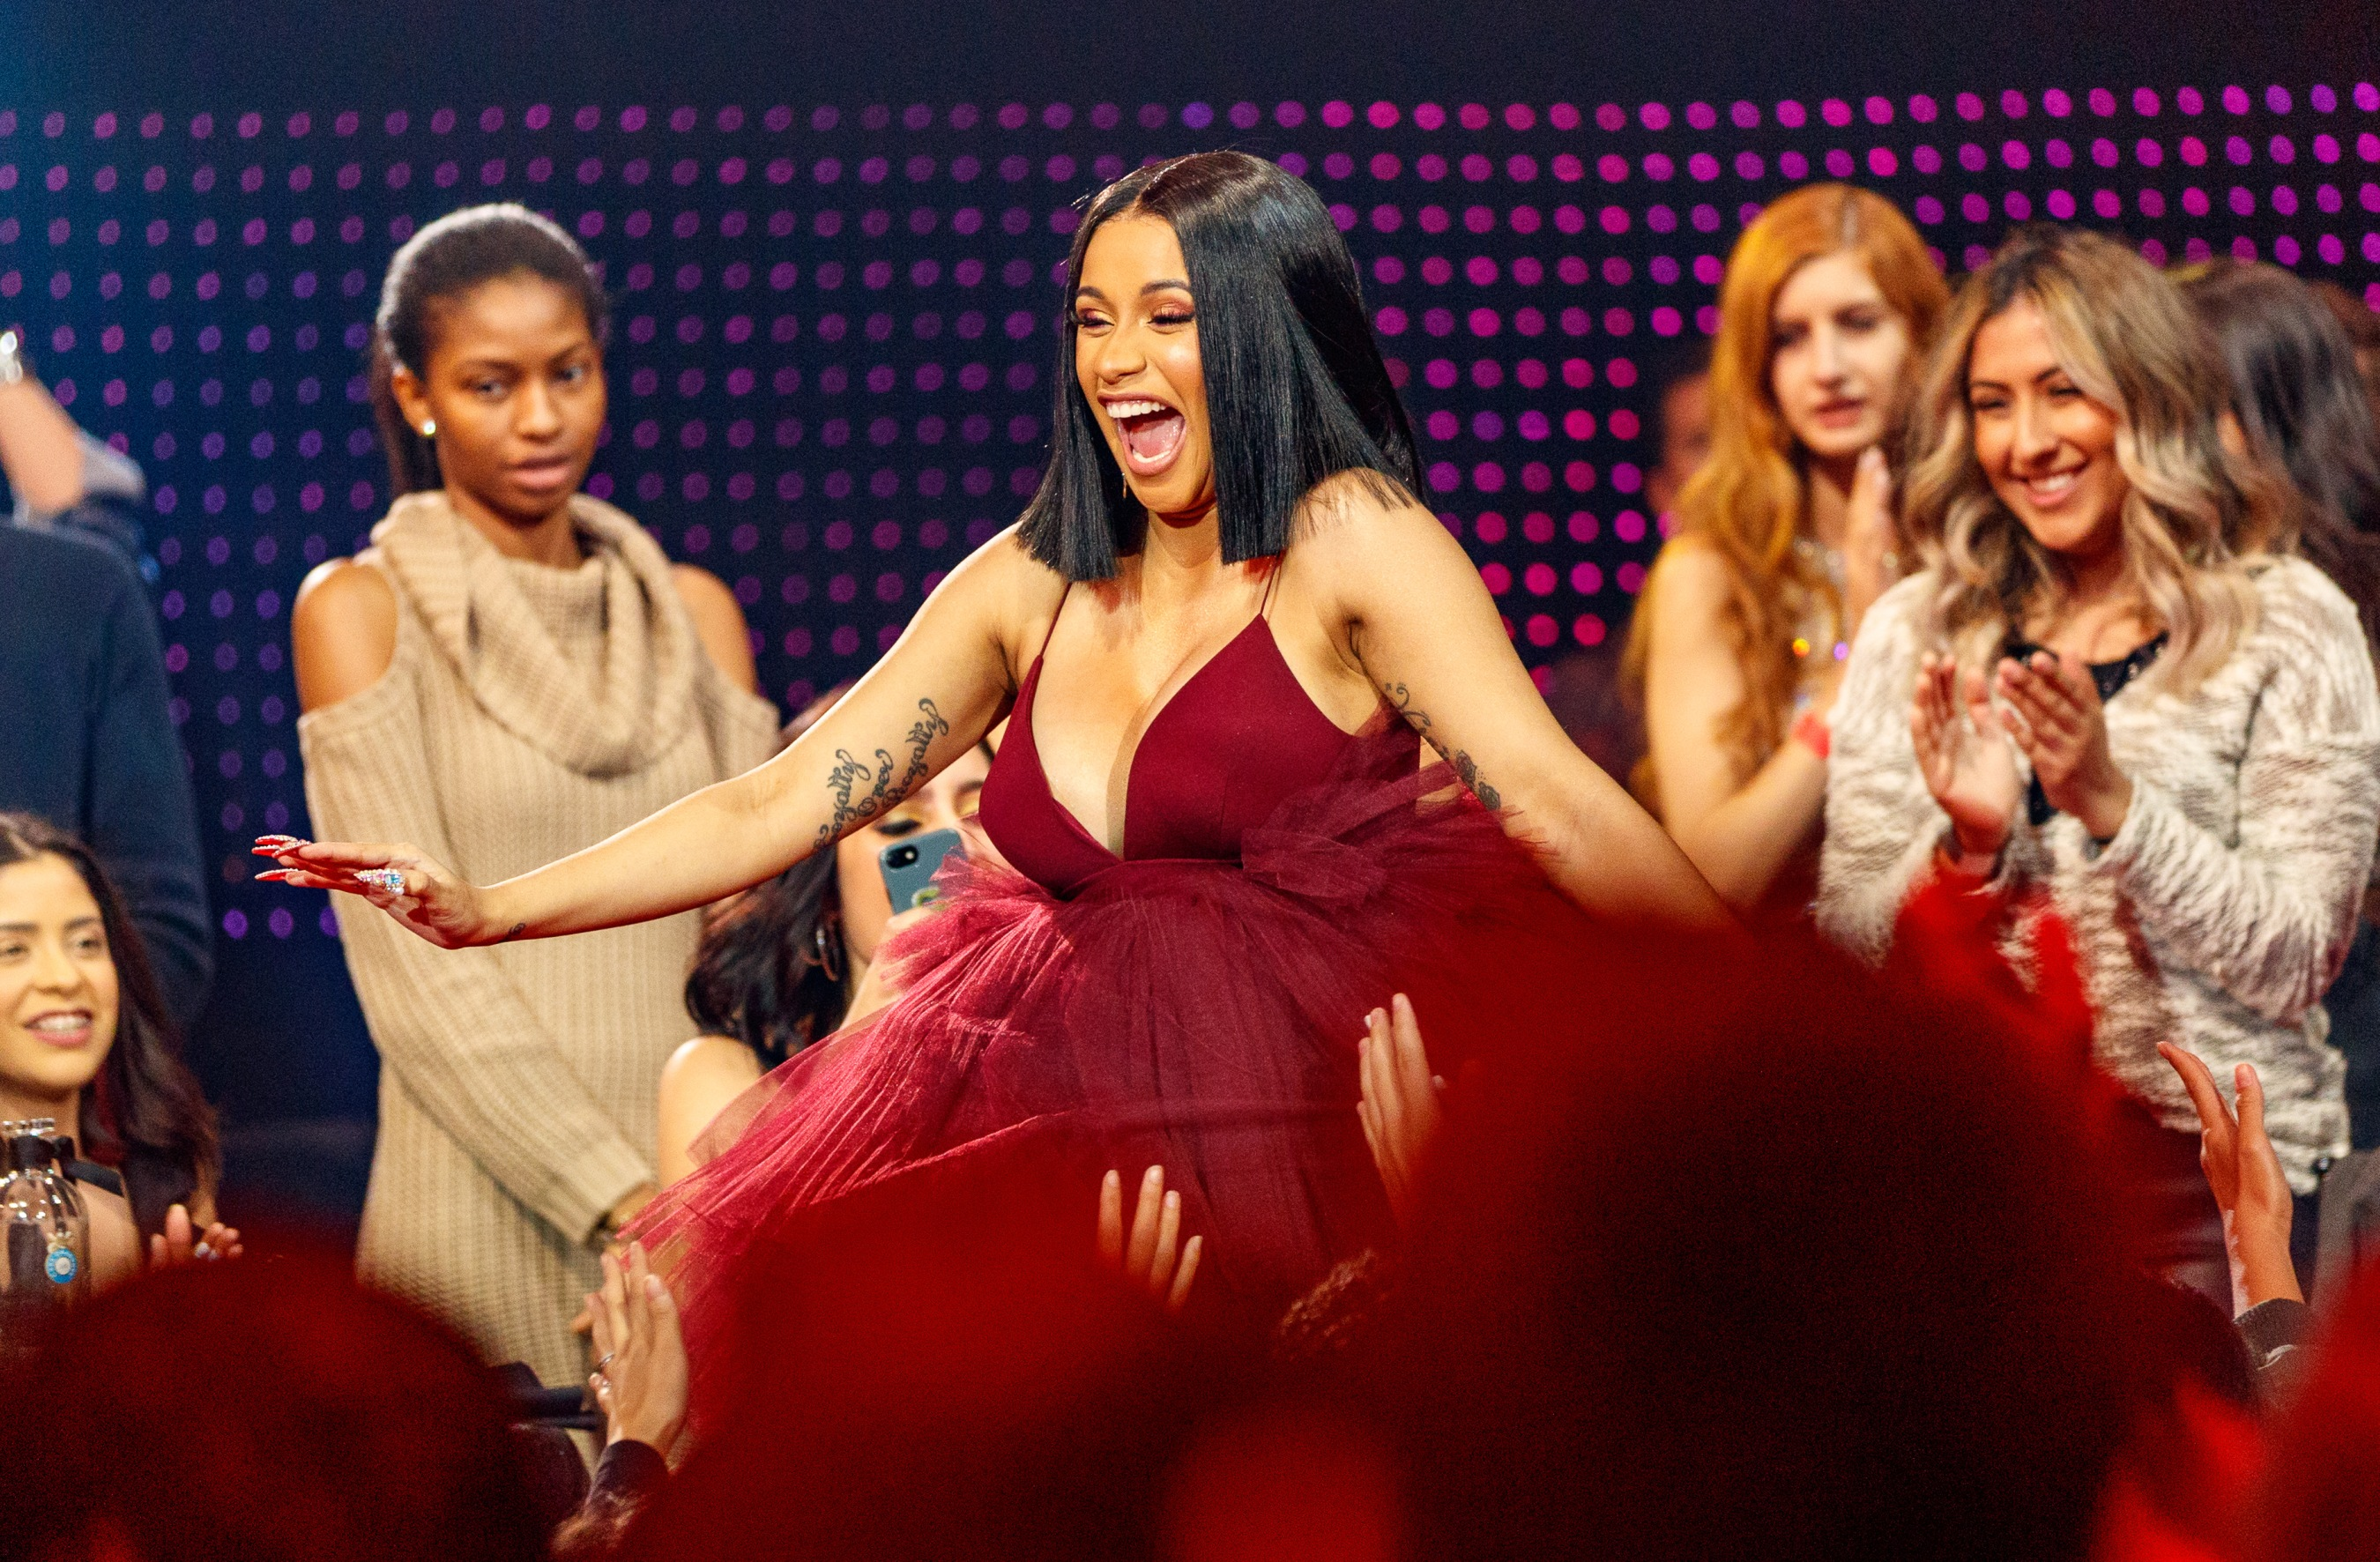 Cardi B Releases Be Careful The Karma For You She Warns Is